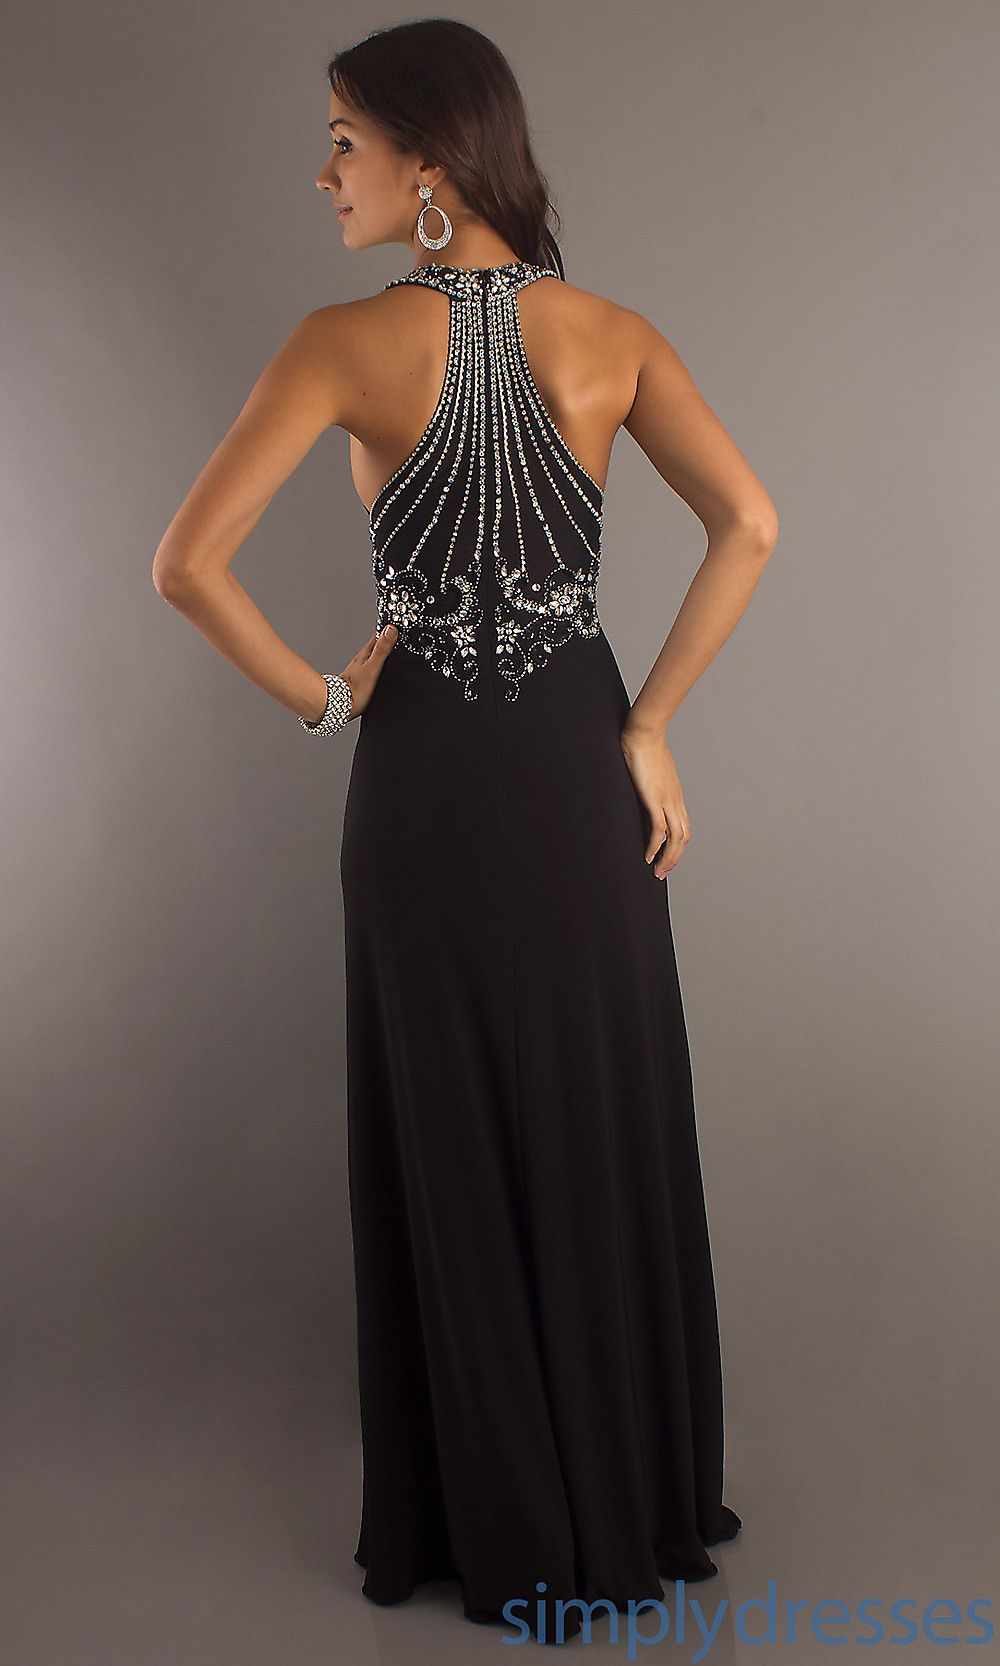 Black Formal Gown With Beaded Cruise Time Styles I Love Dresses